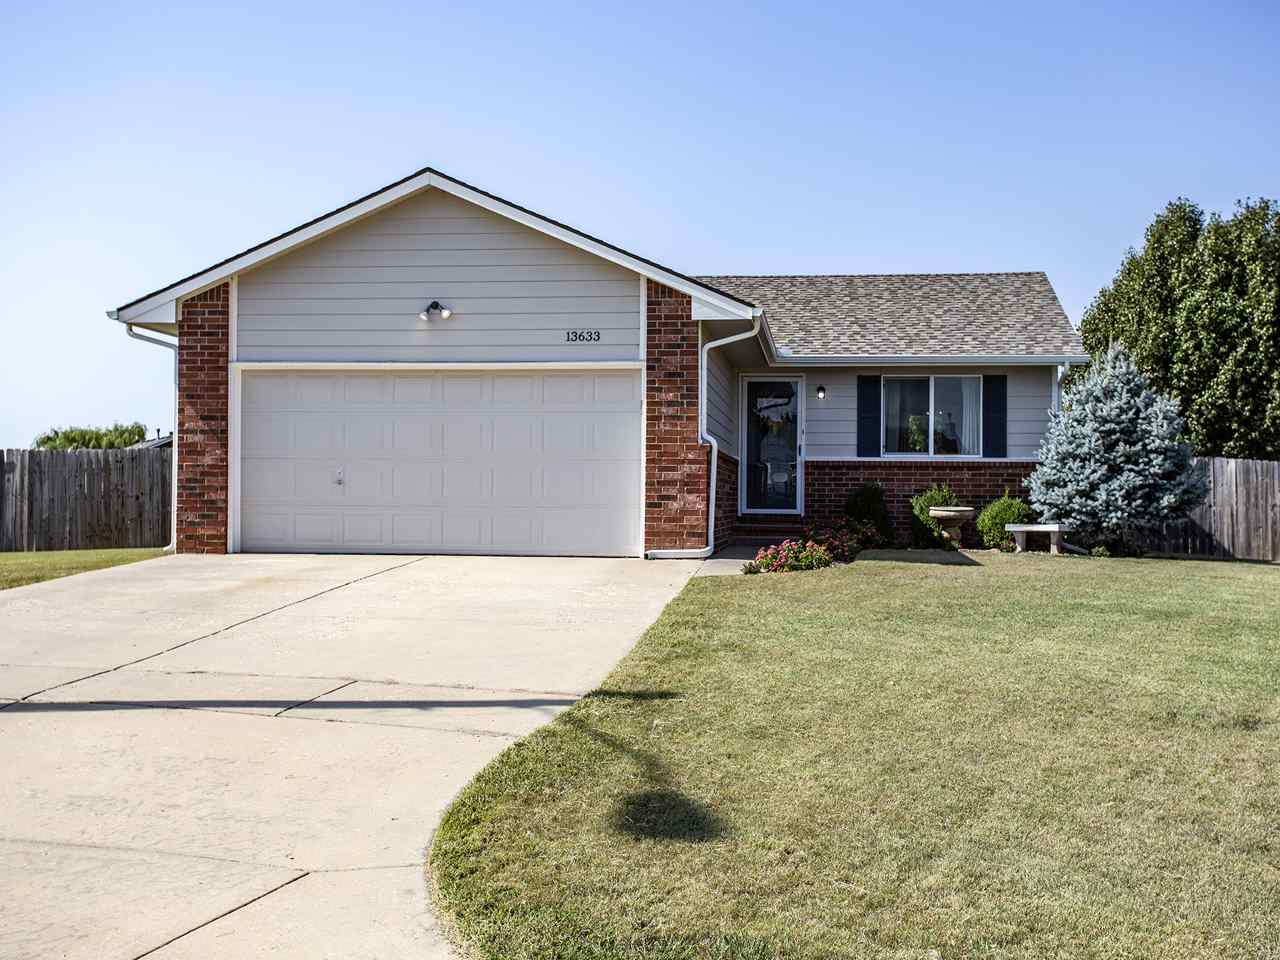 Darling 3 bedroom home with new wood laminate flooring and Paint. Yard has Low maintenance Buffalo g